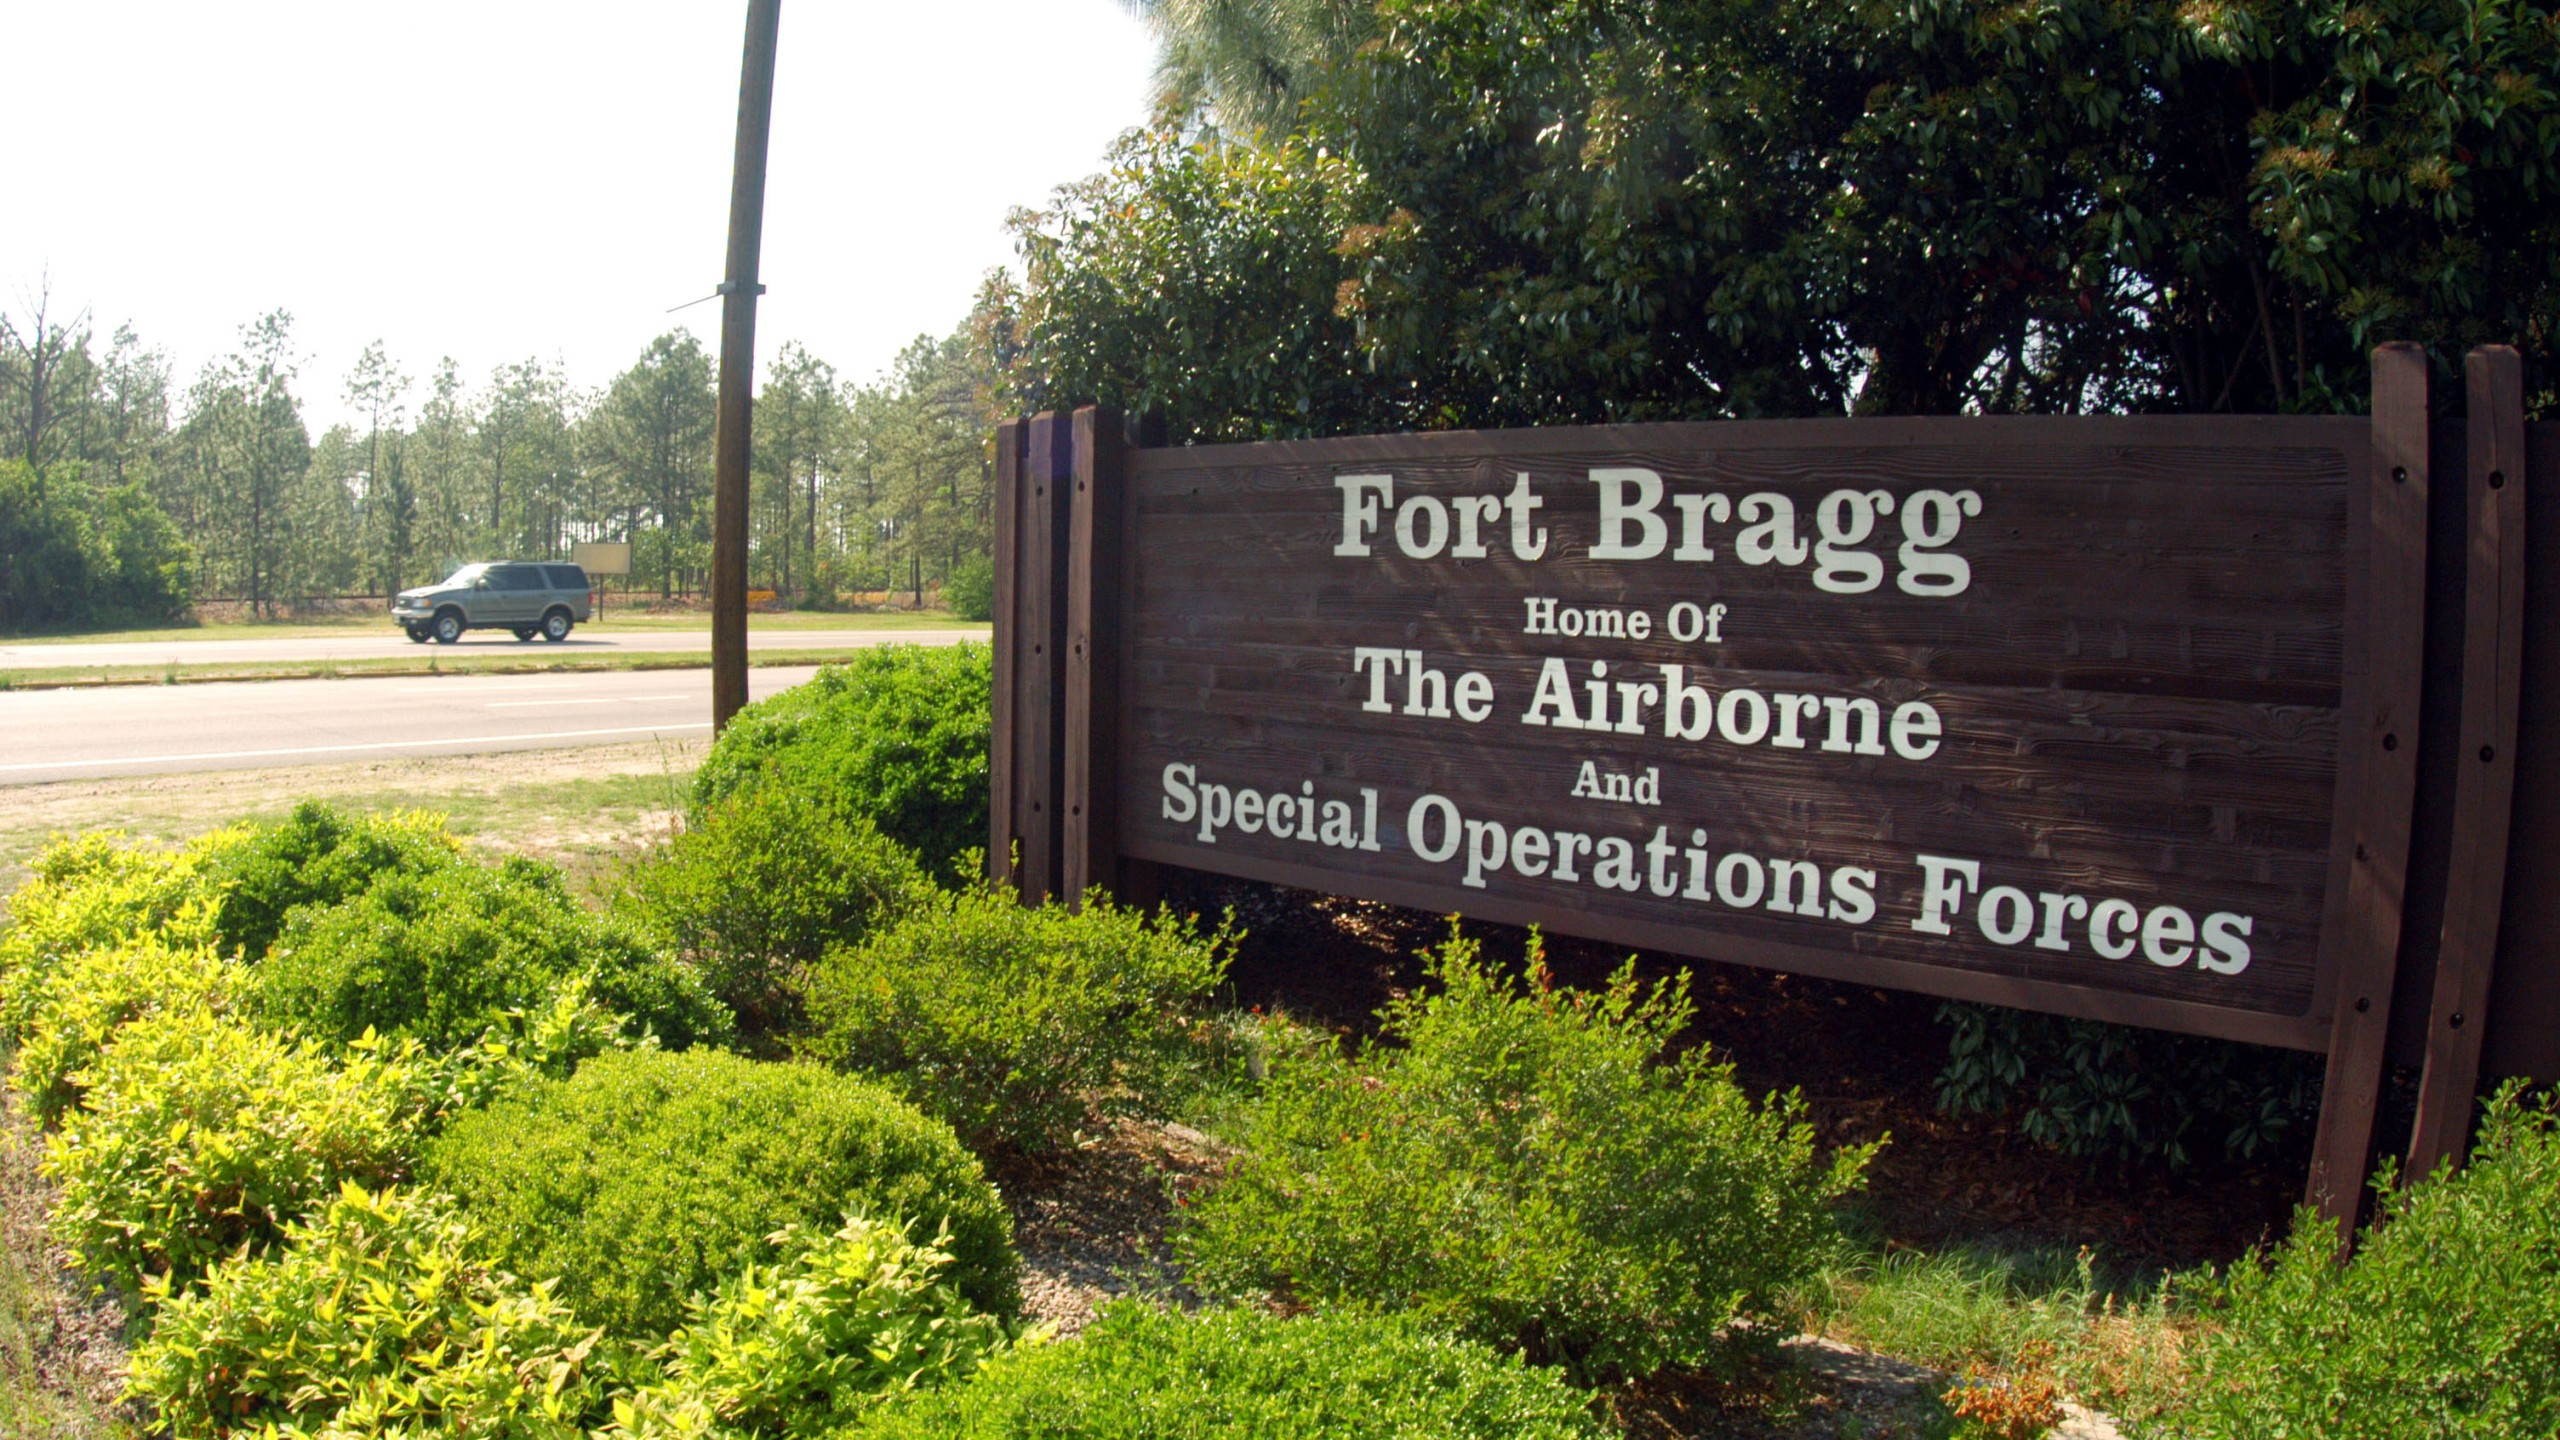 Fort Bragg sign (Photo by Logan Mock-Bunting/Getty Images)